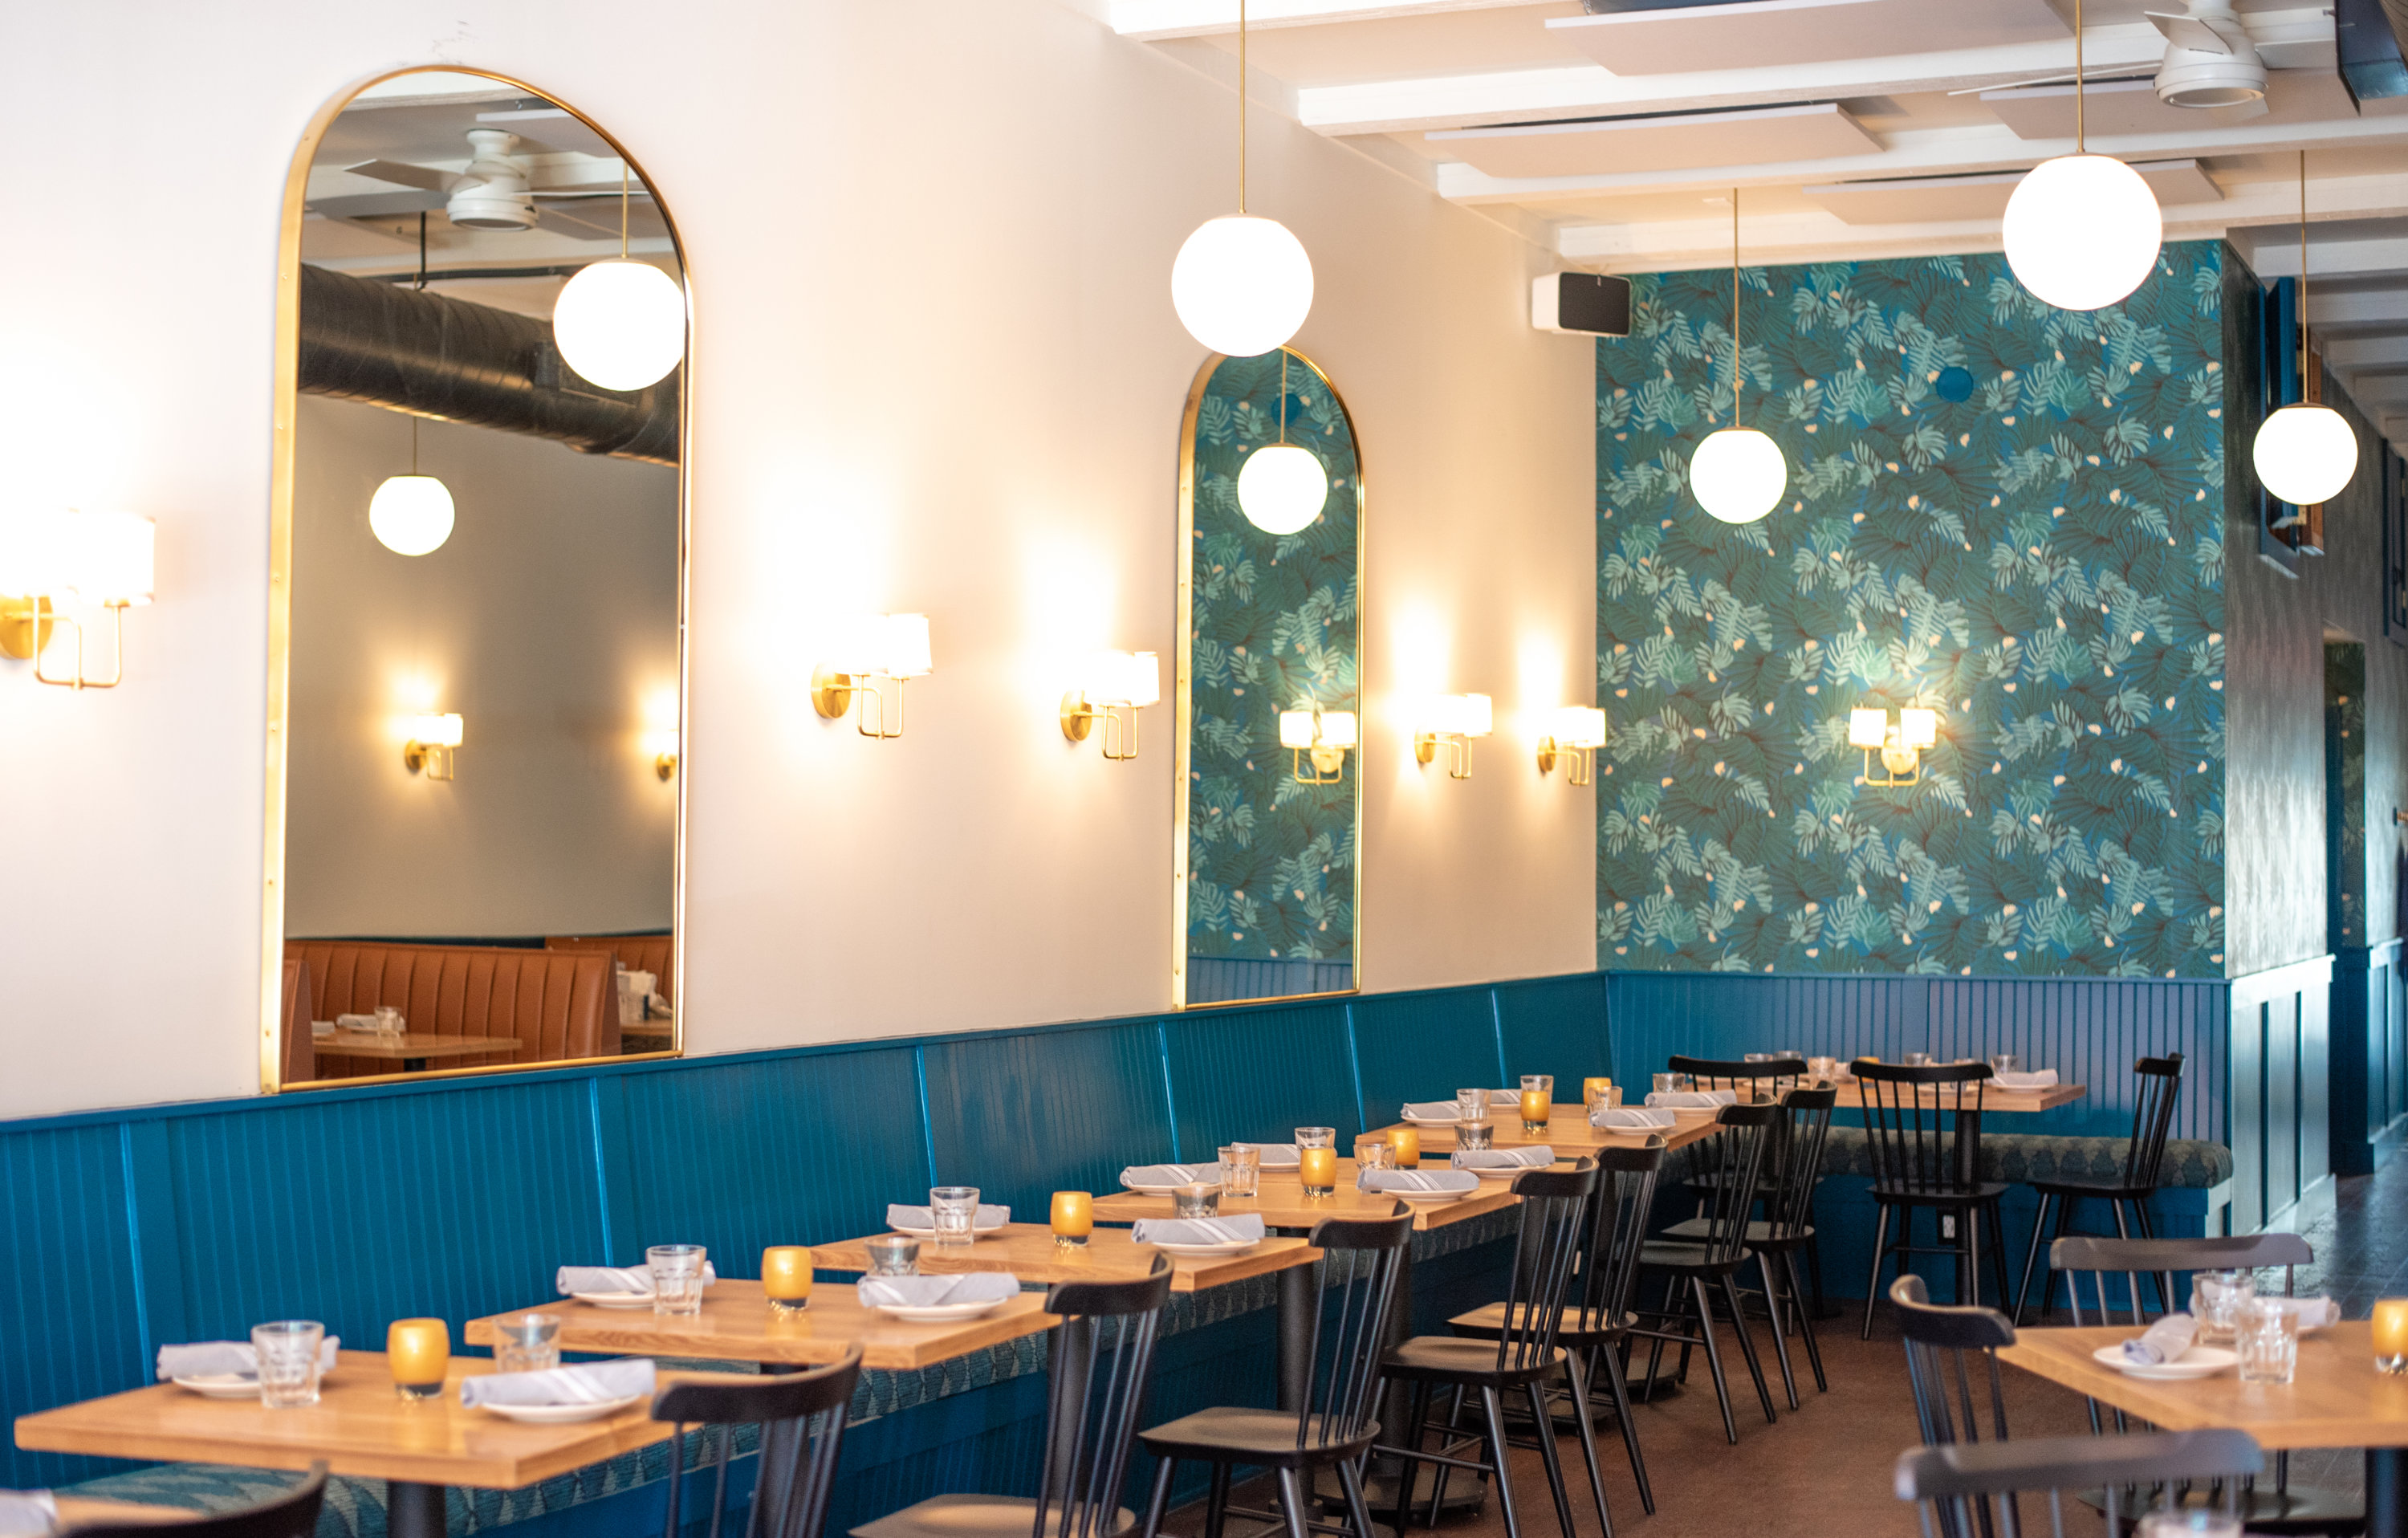 Touches of teal are inspired by L'Artusi. Photograph courtesy of Thompson Italian.